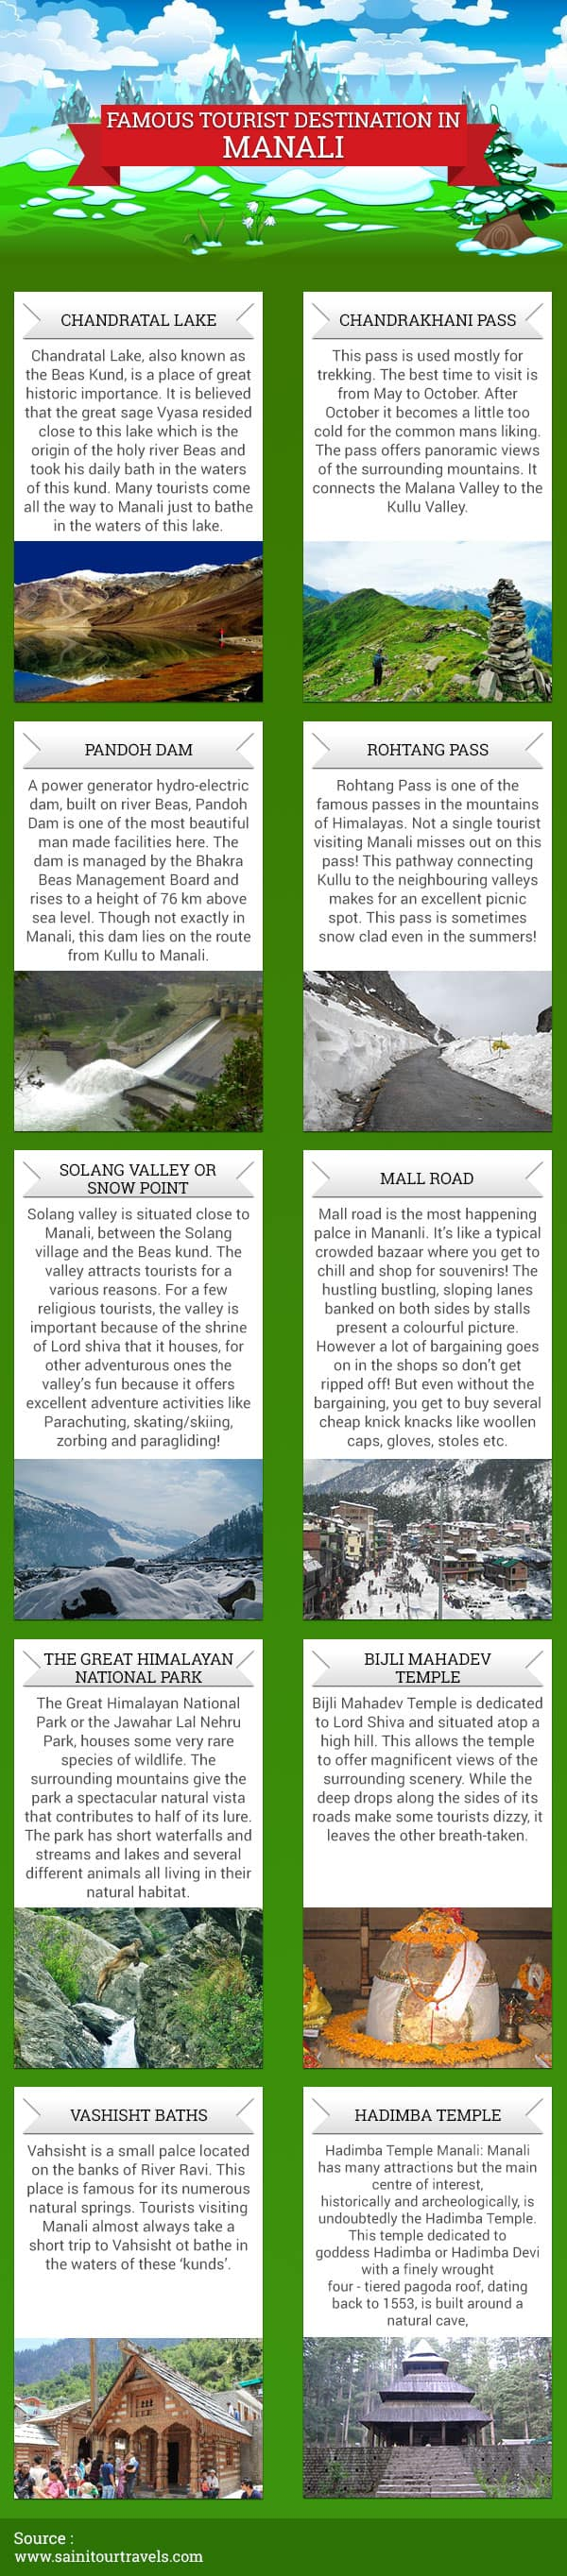 Famous Tourist Destinations in Manali